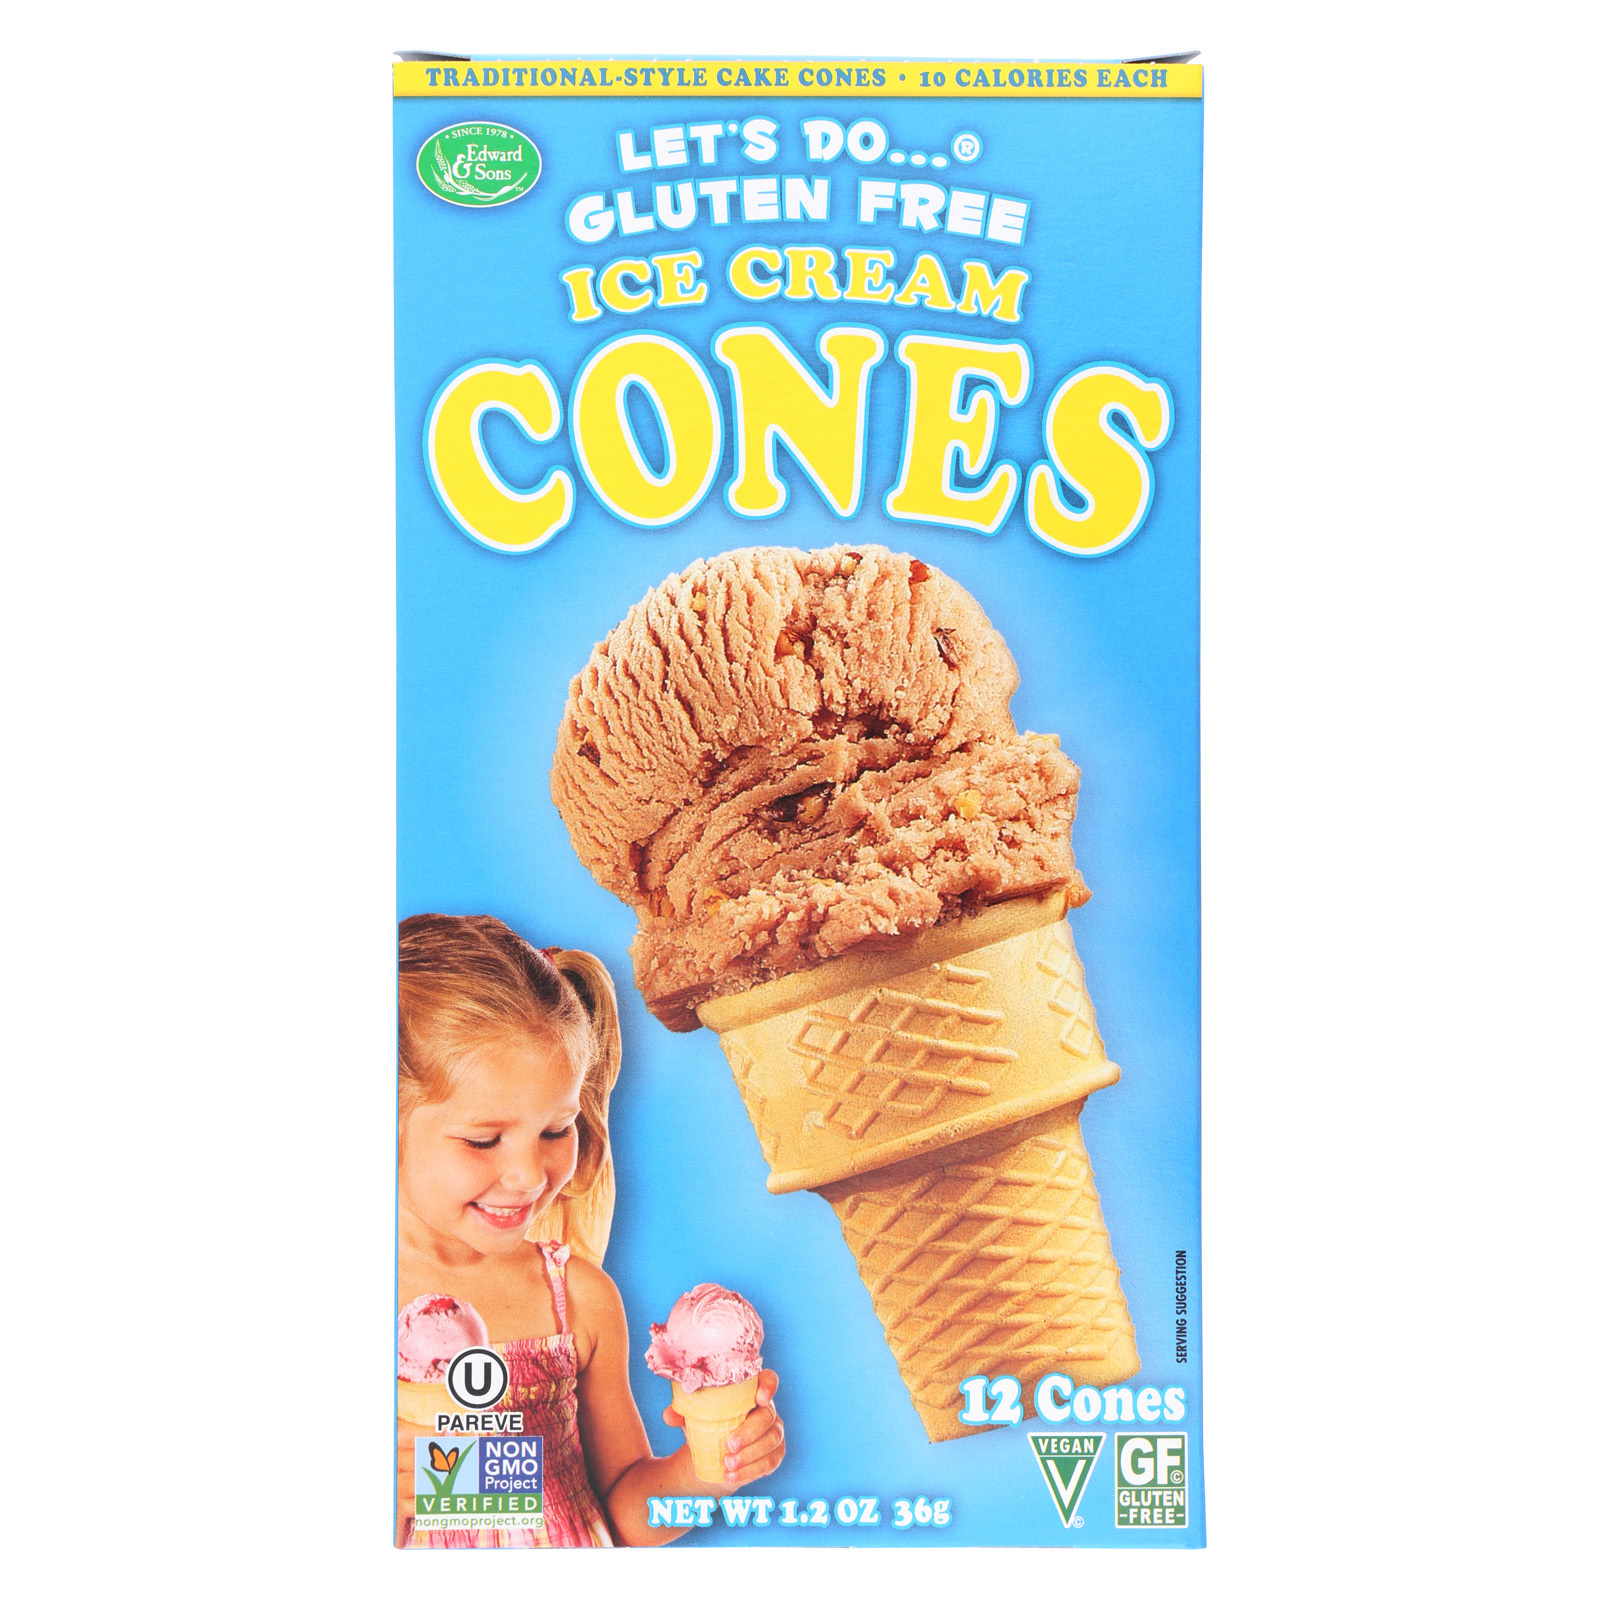 Let's Do Ice Cream Cones - Simple - Case of 12 - 1.2 oz.